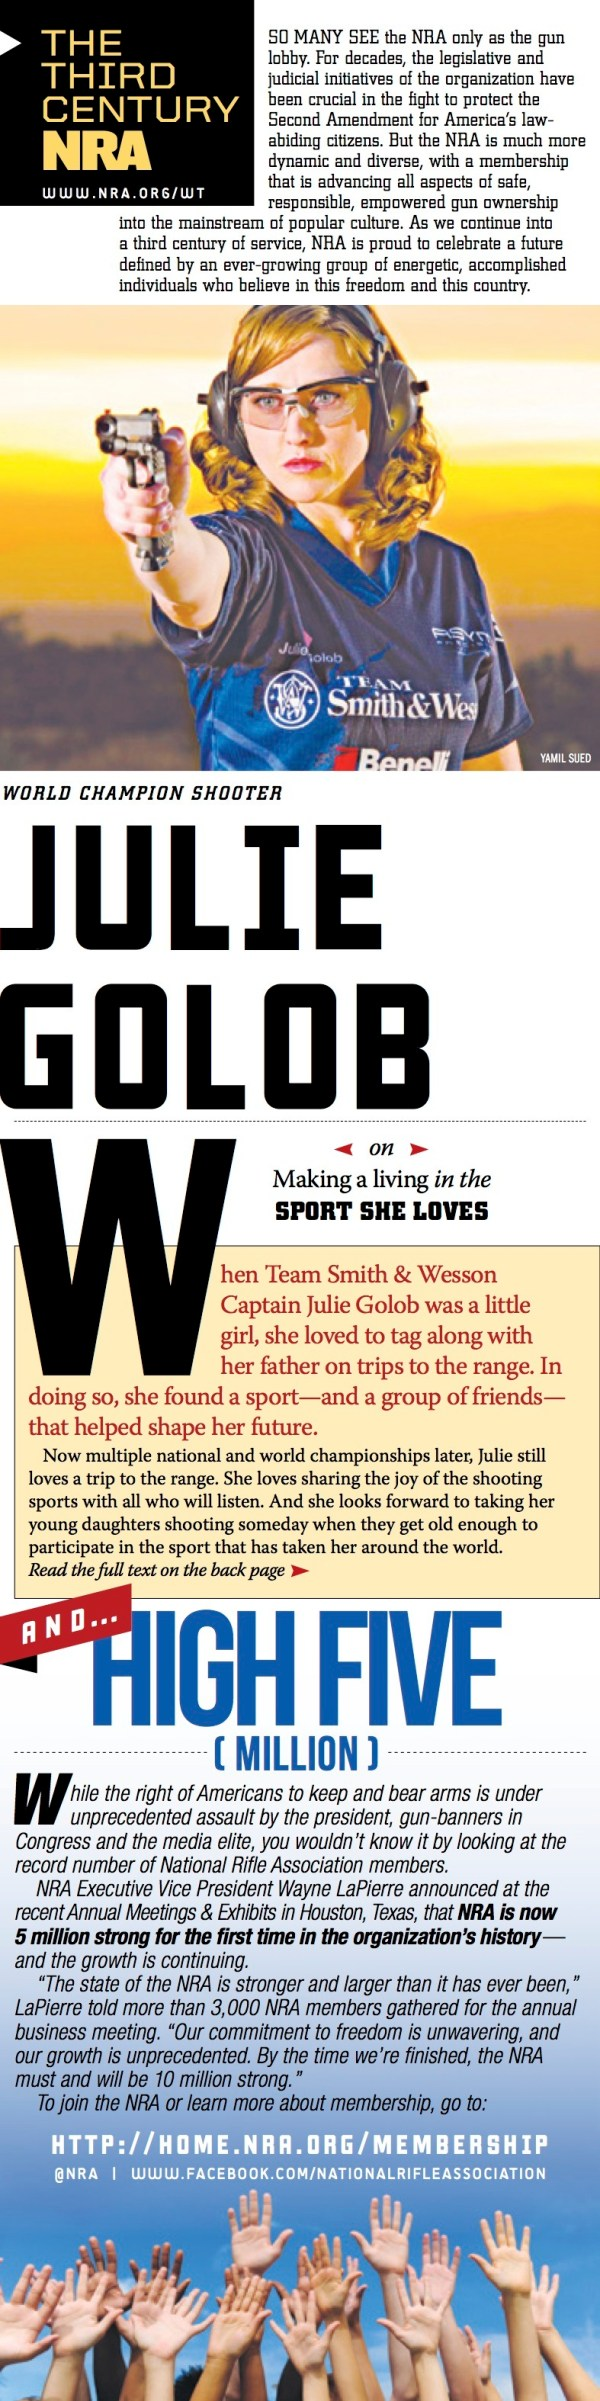 Third Century NRA - Julie Golob Page 1